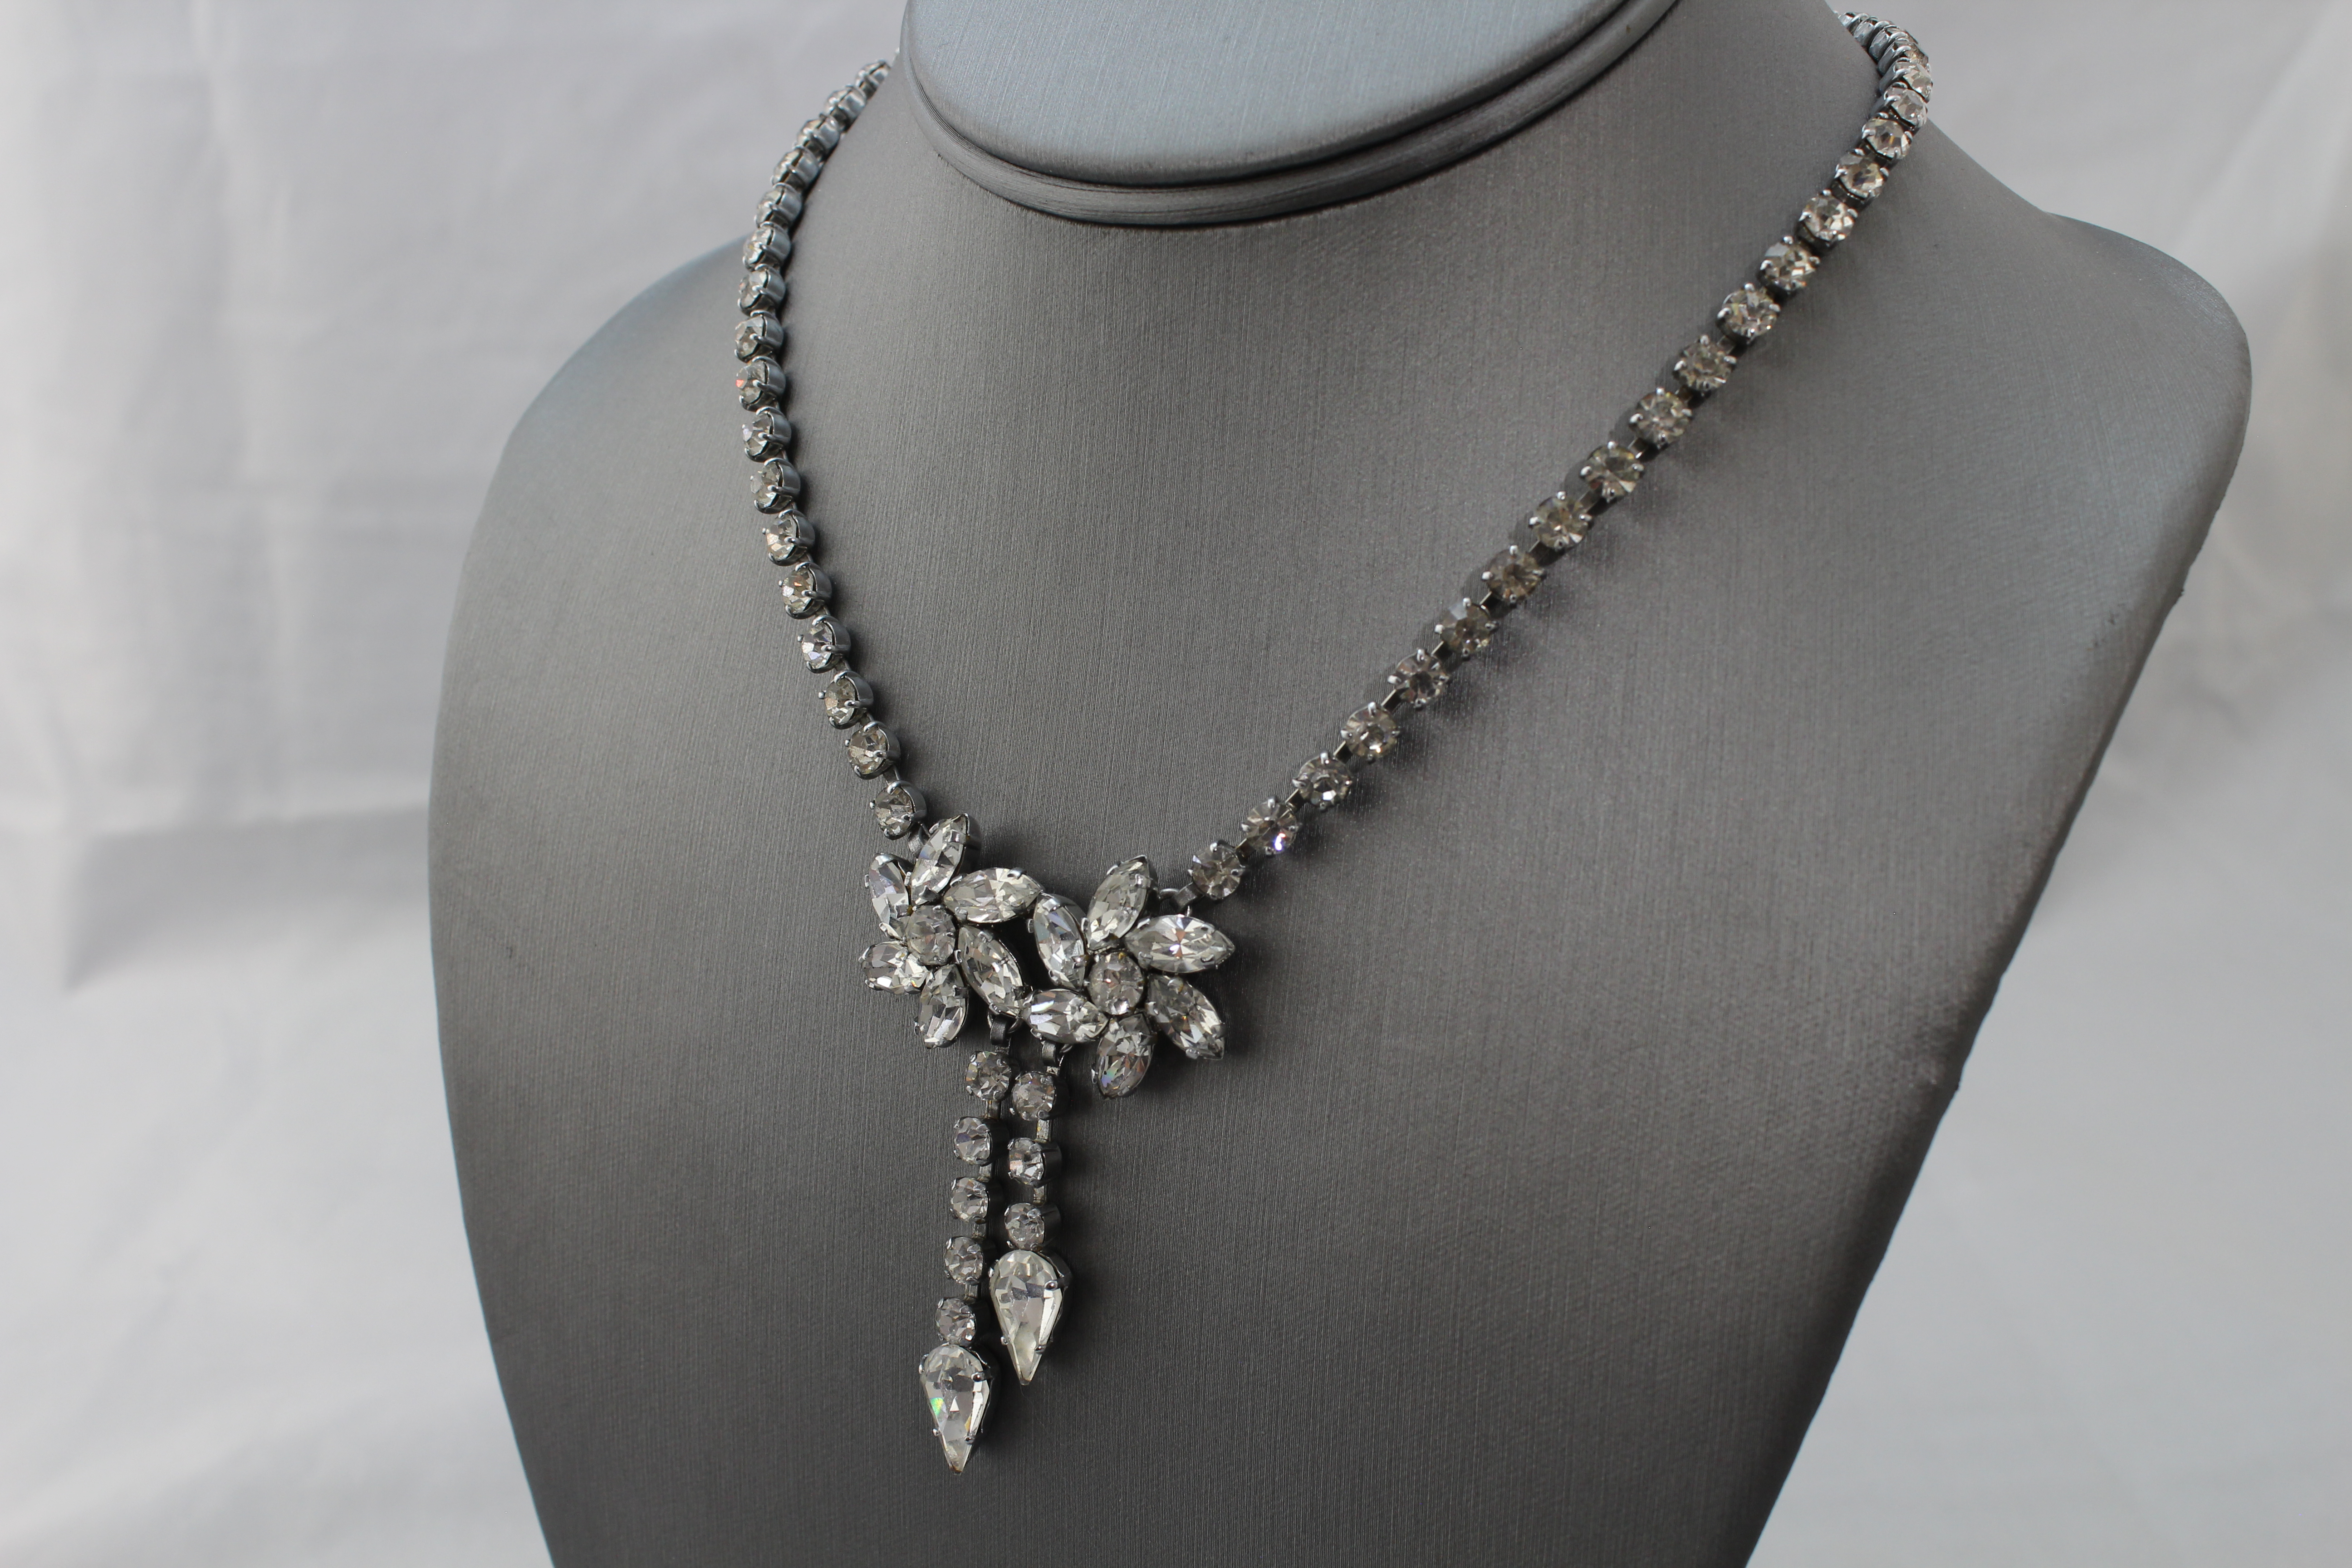 Black double chain with large dangle rhinestones Necklace